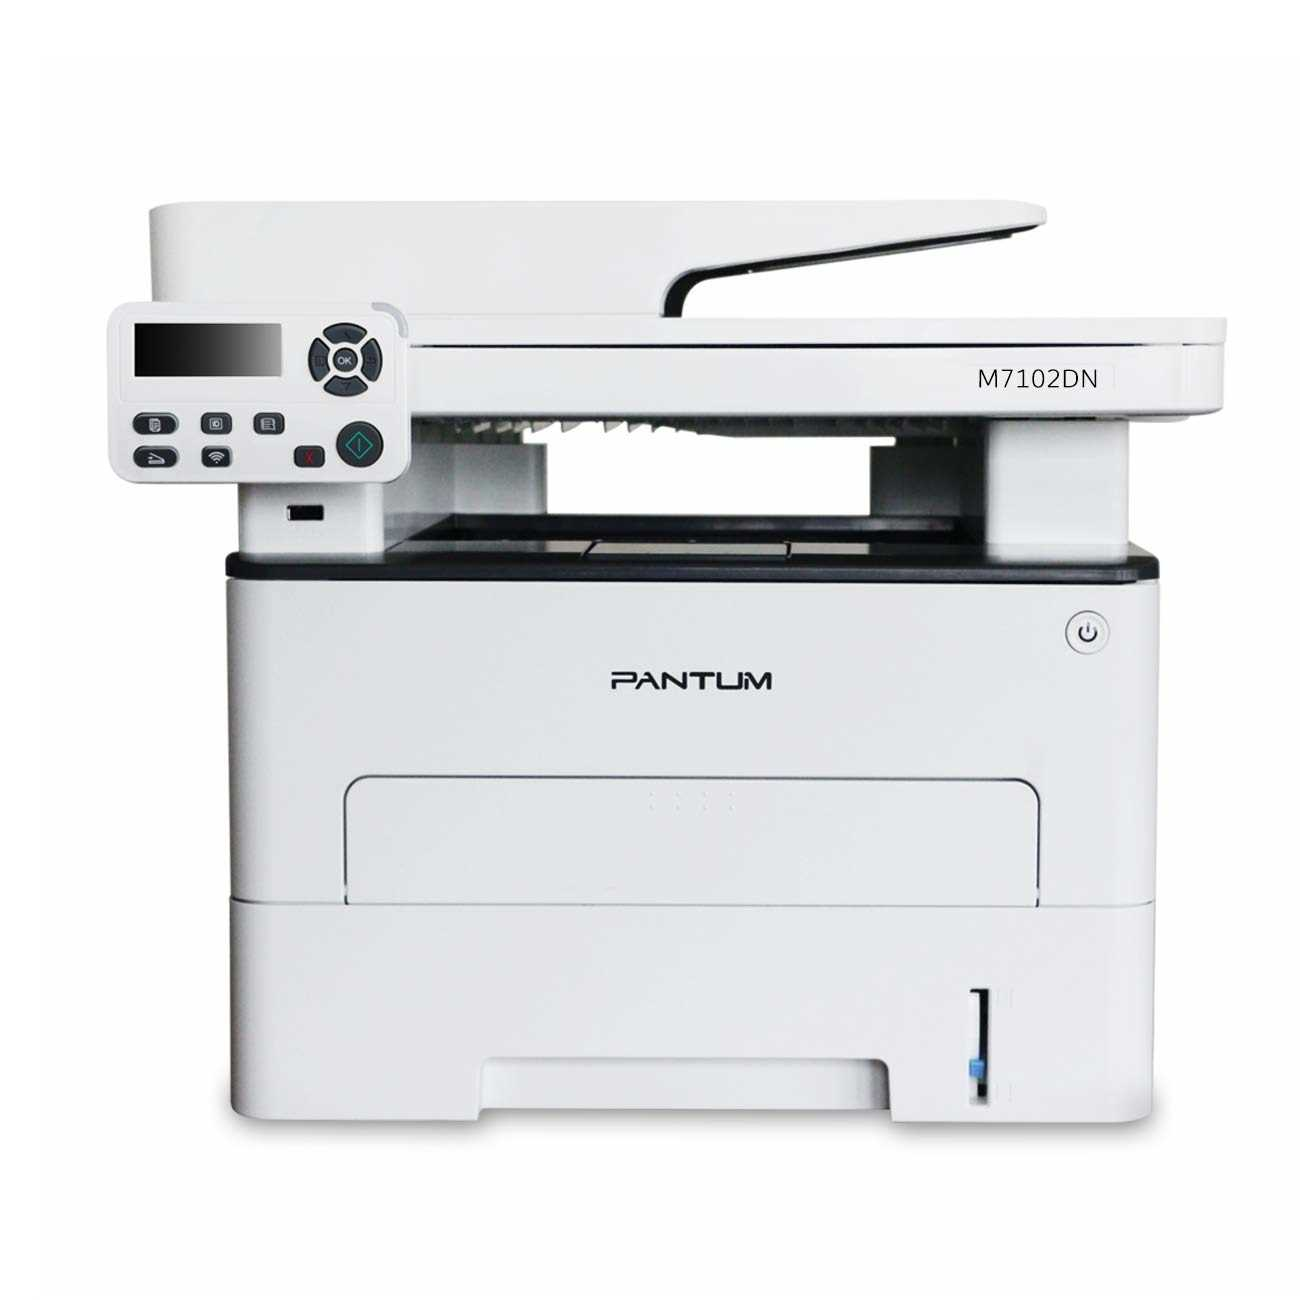 Pantum M7102DN Laser Multifunction Printer